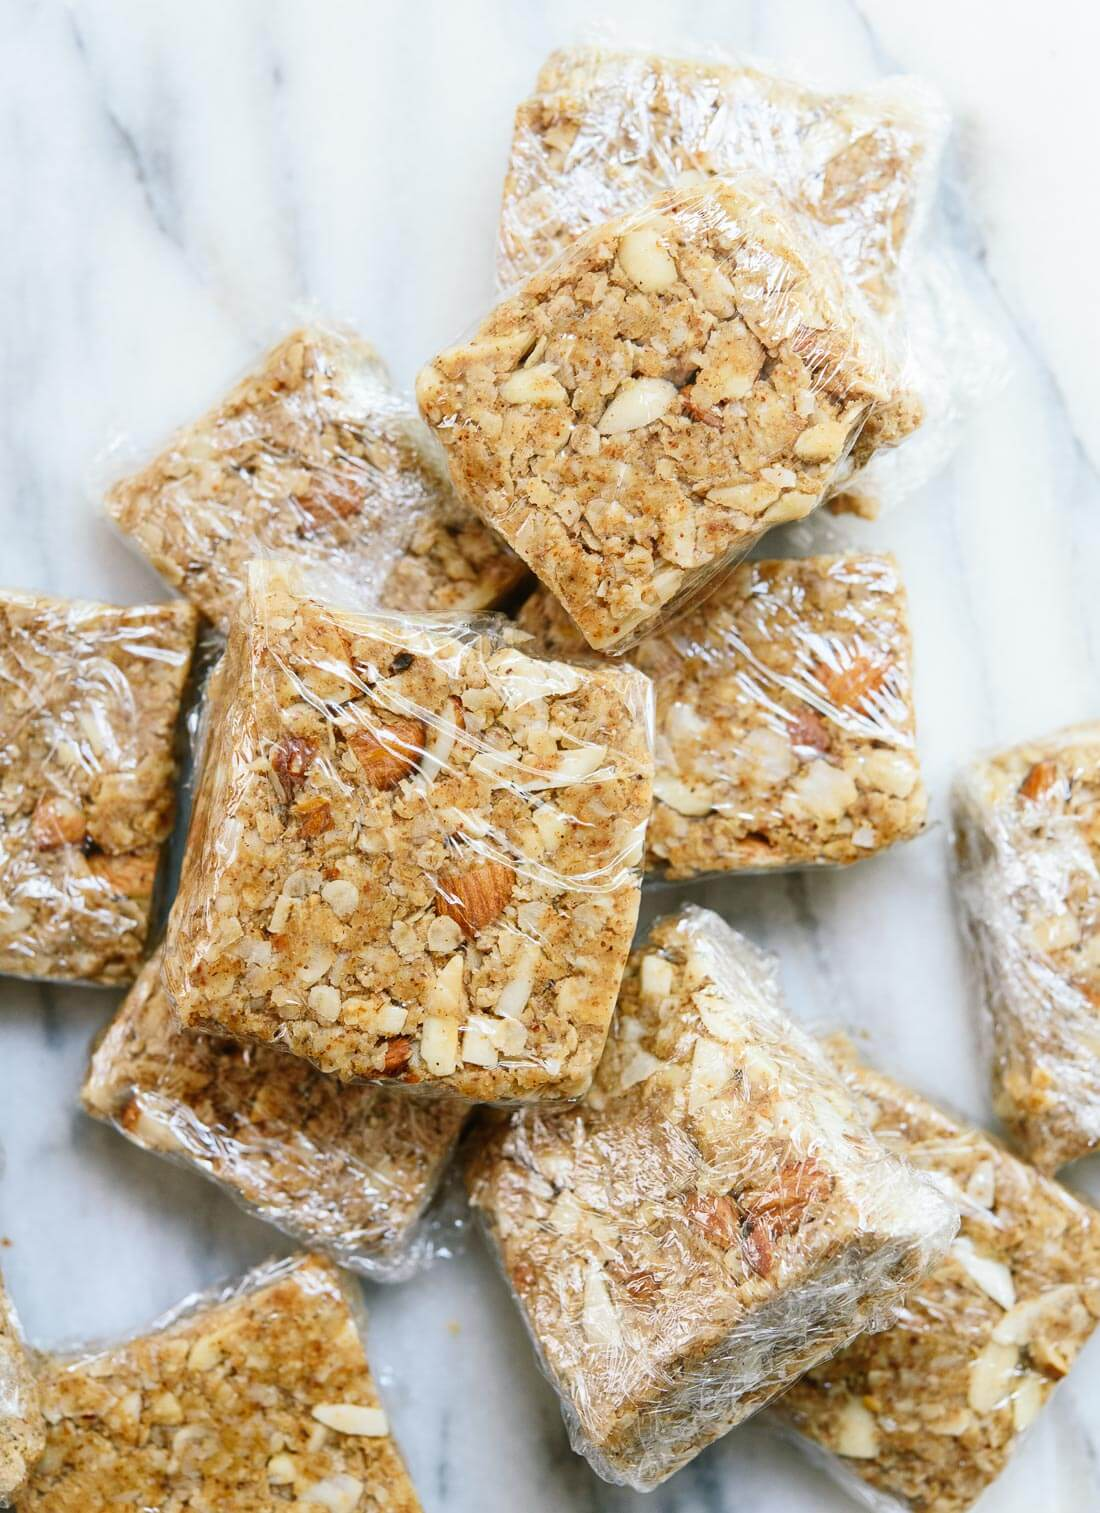 No-bake almond-coconut granola bars are a healthy, energy-rich snack when hunger strikes! cookieandkate.com